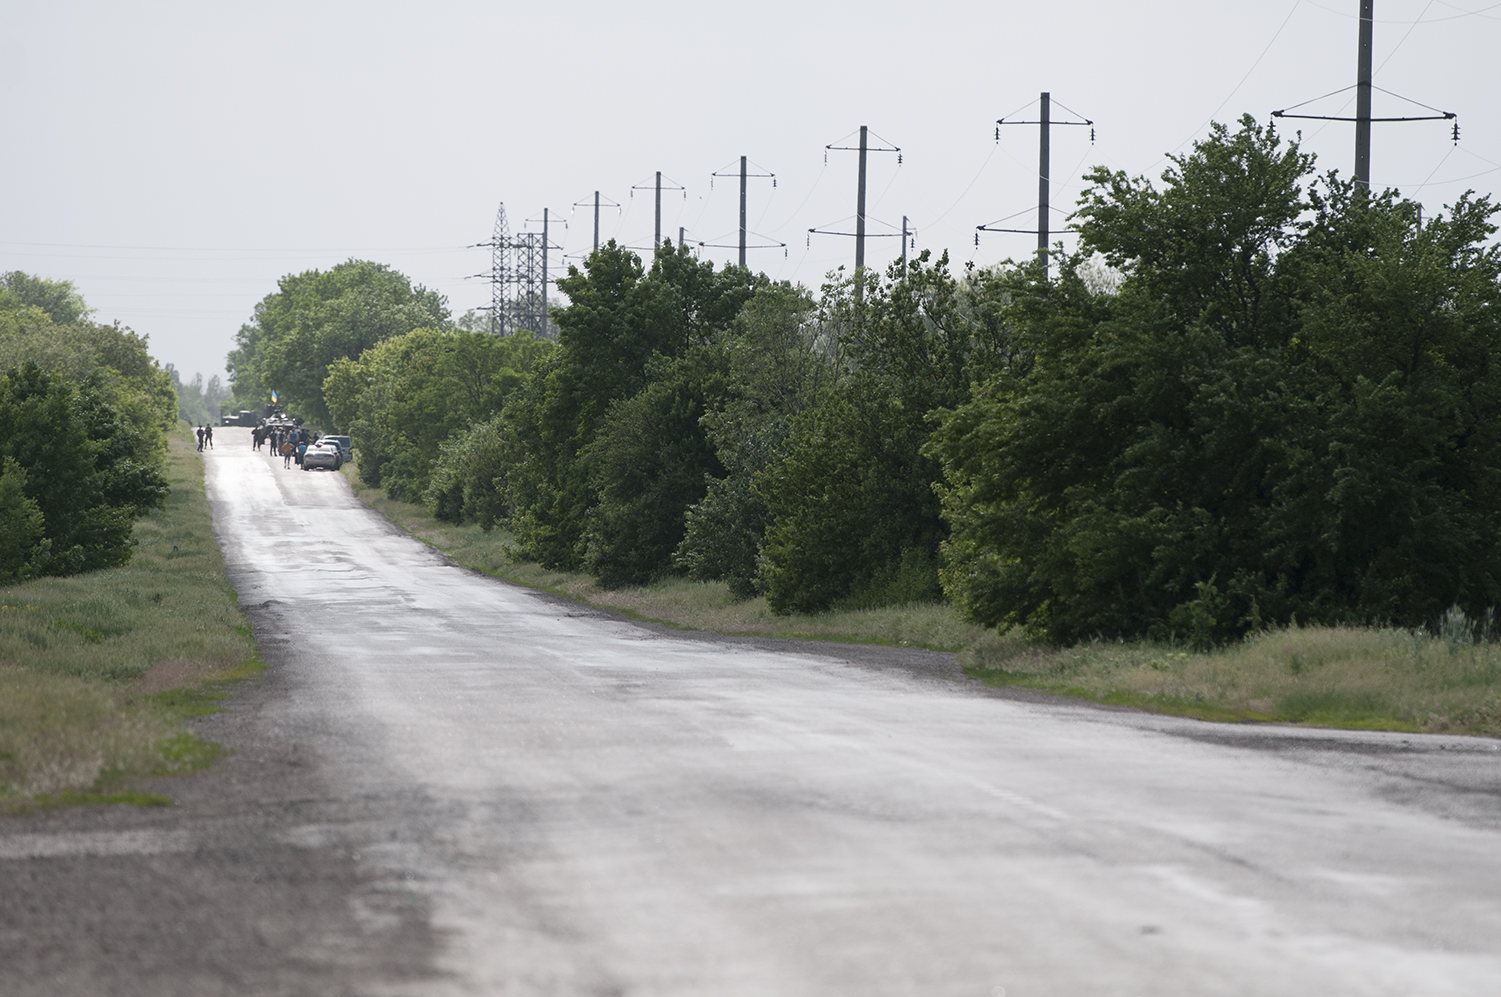 An Ukrainian Army's checkpoint near Volnovakharefusing to grand access a group of journalists